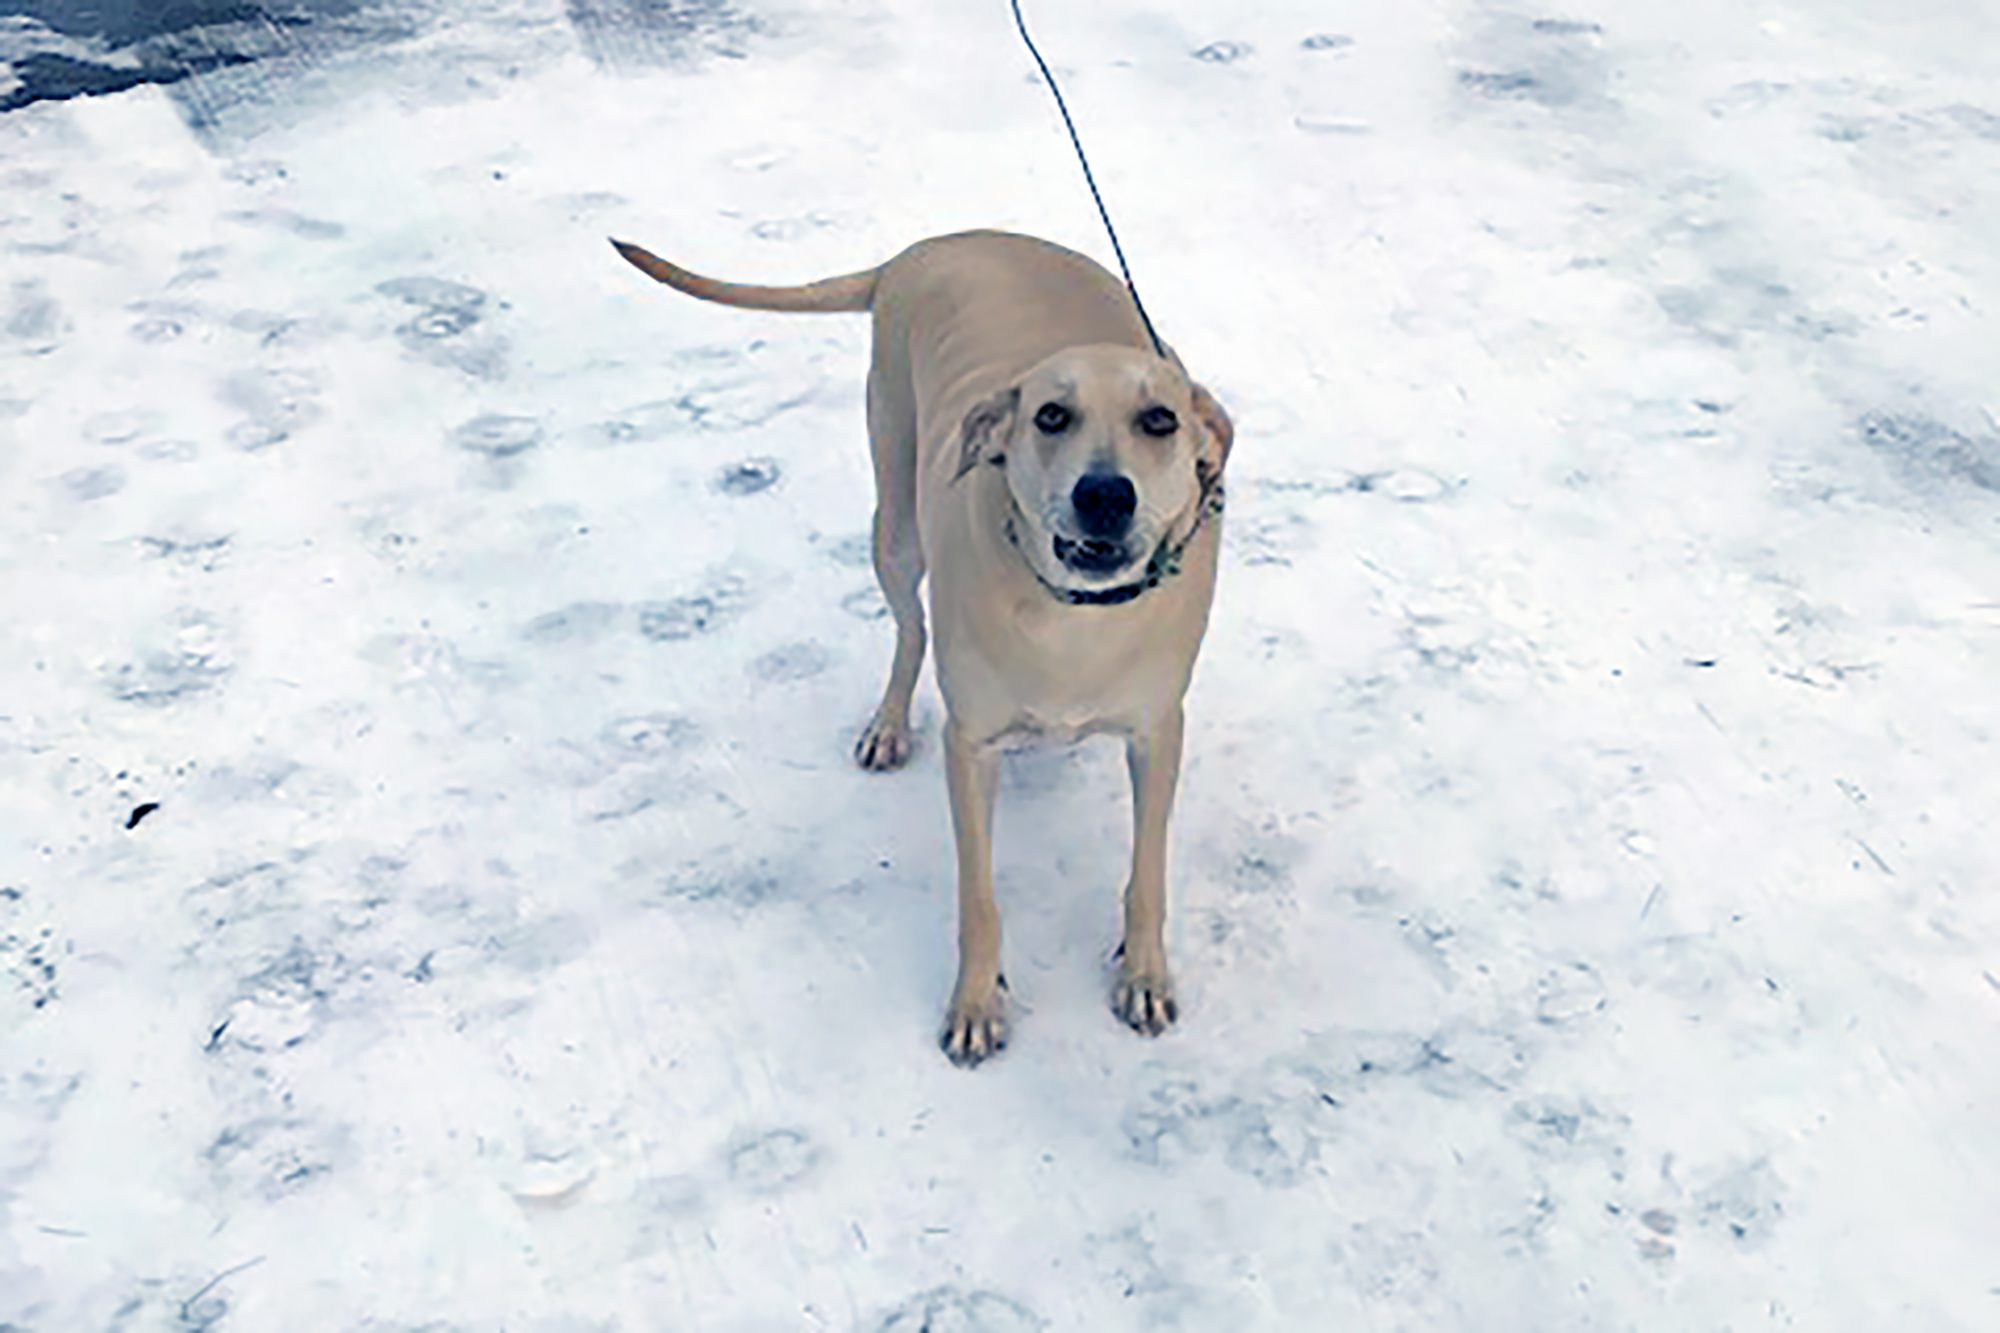 Blonde adult dog looks at camera while standing on snowy surface